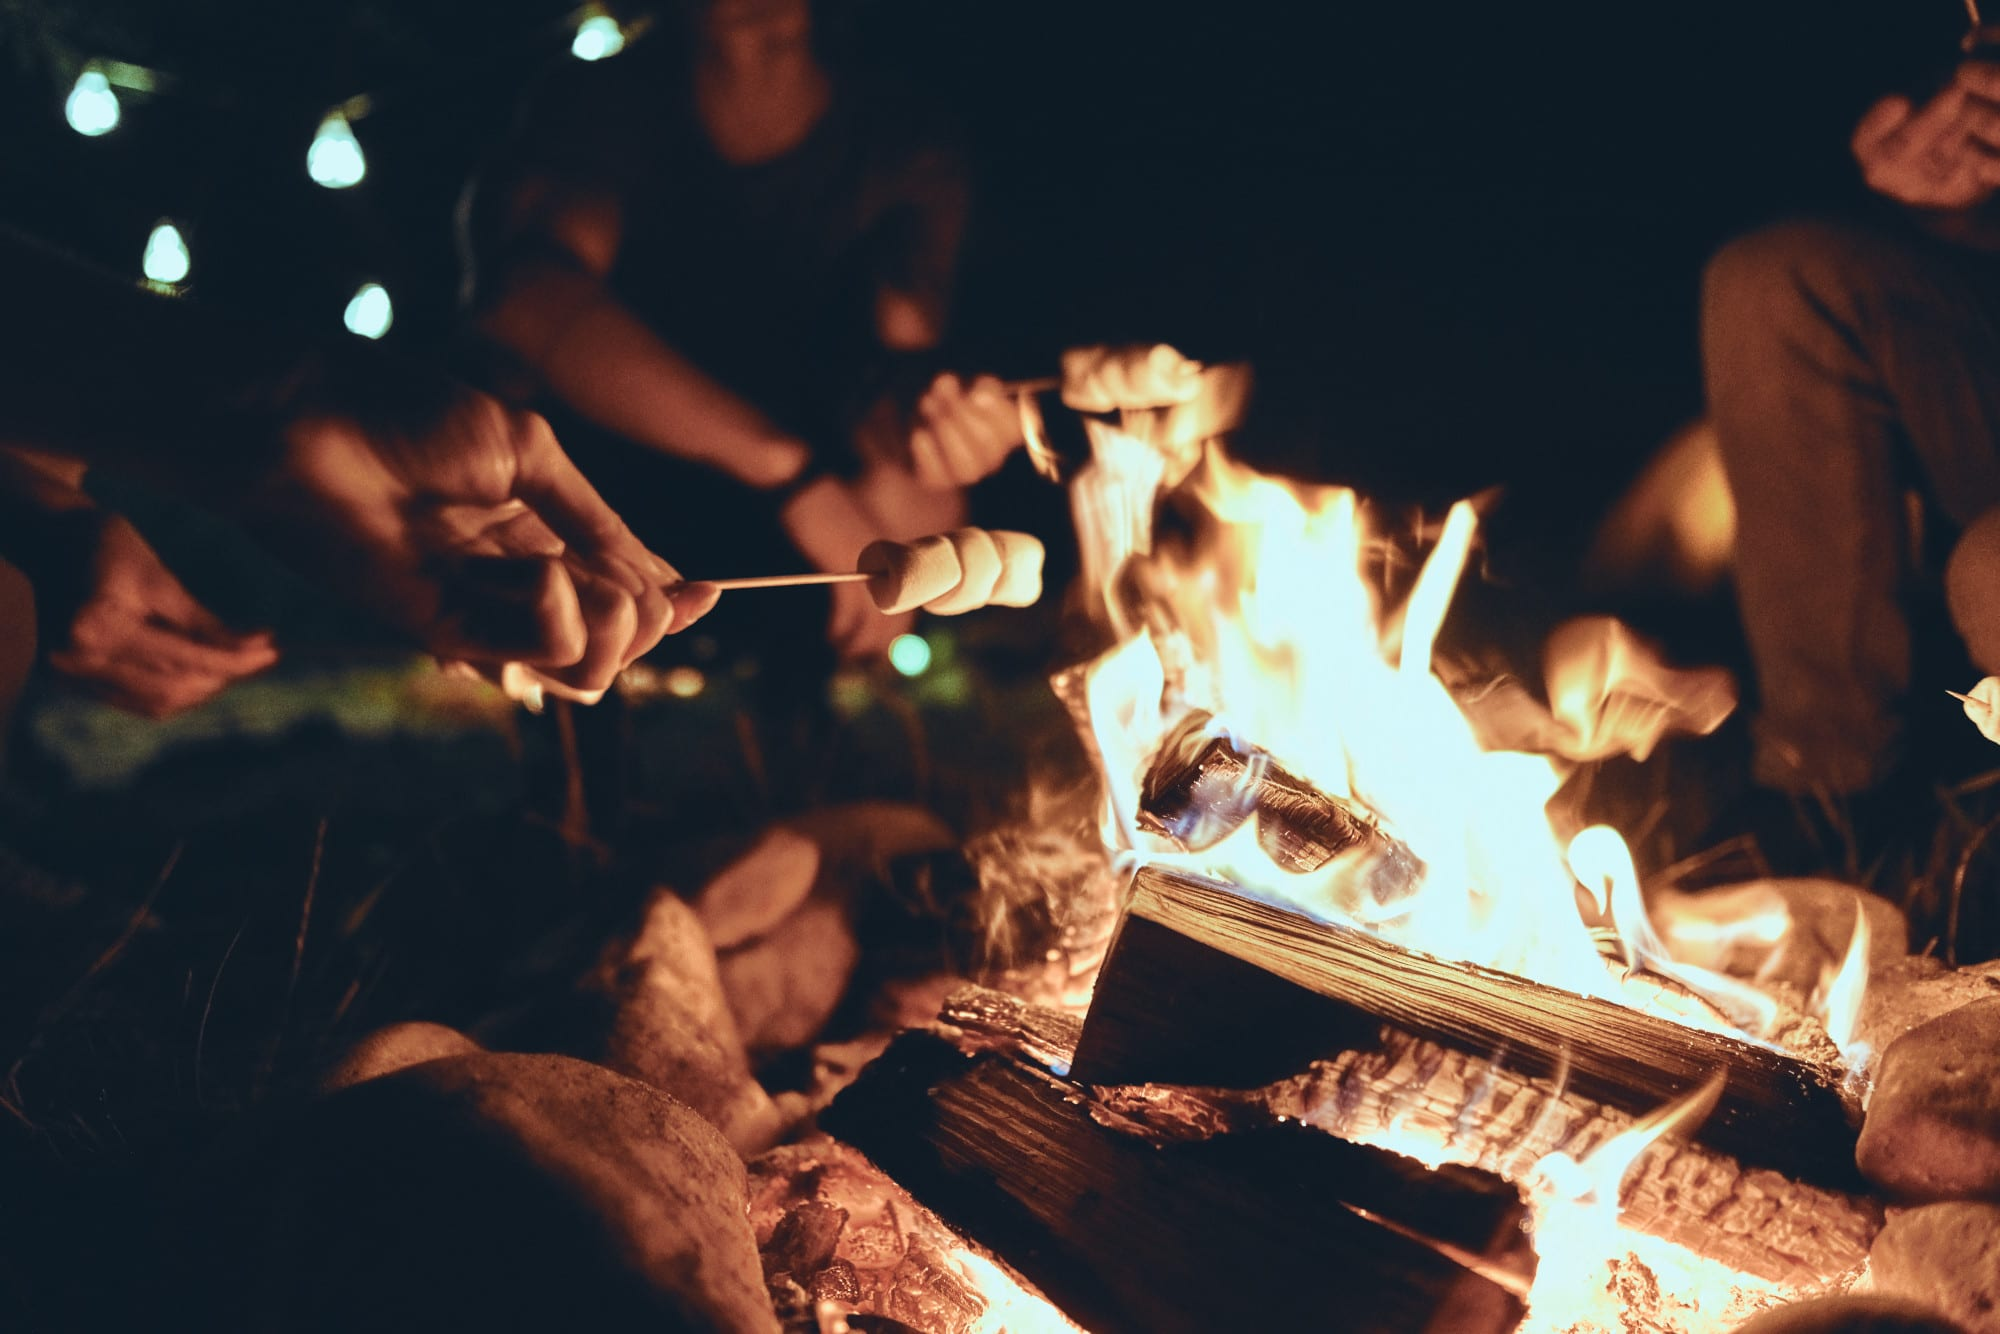 Toasting marshmallows over a campfire